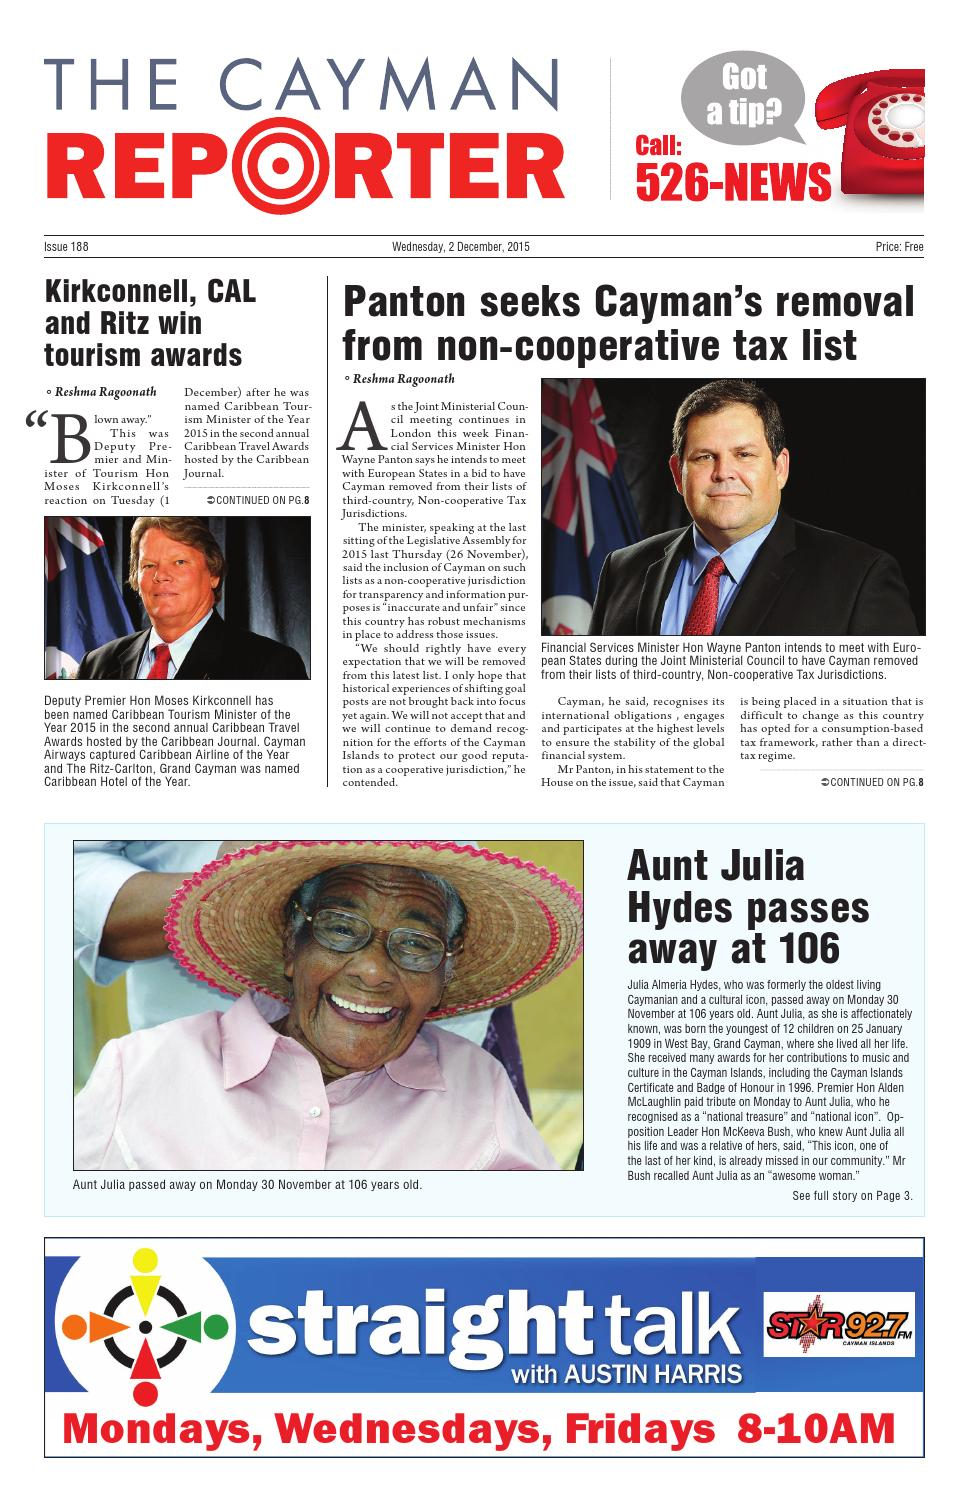 The Cayman Reporter